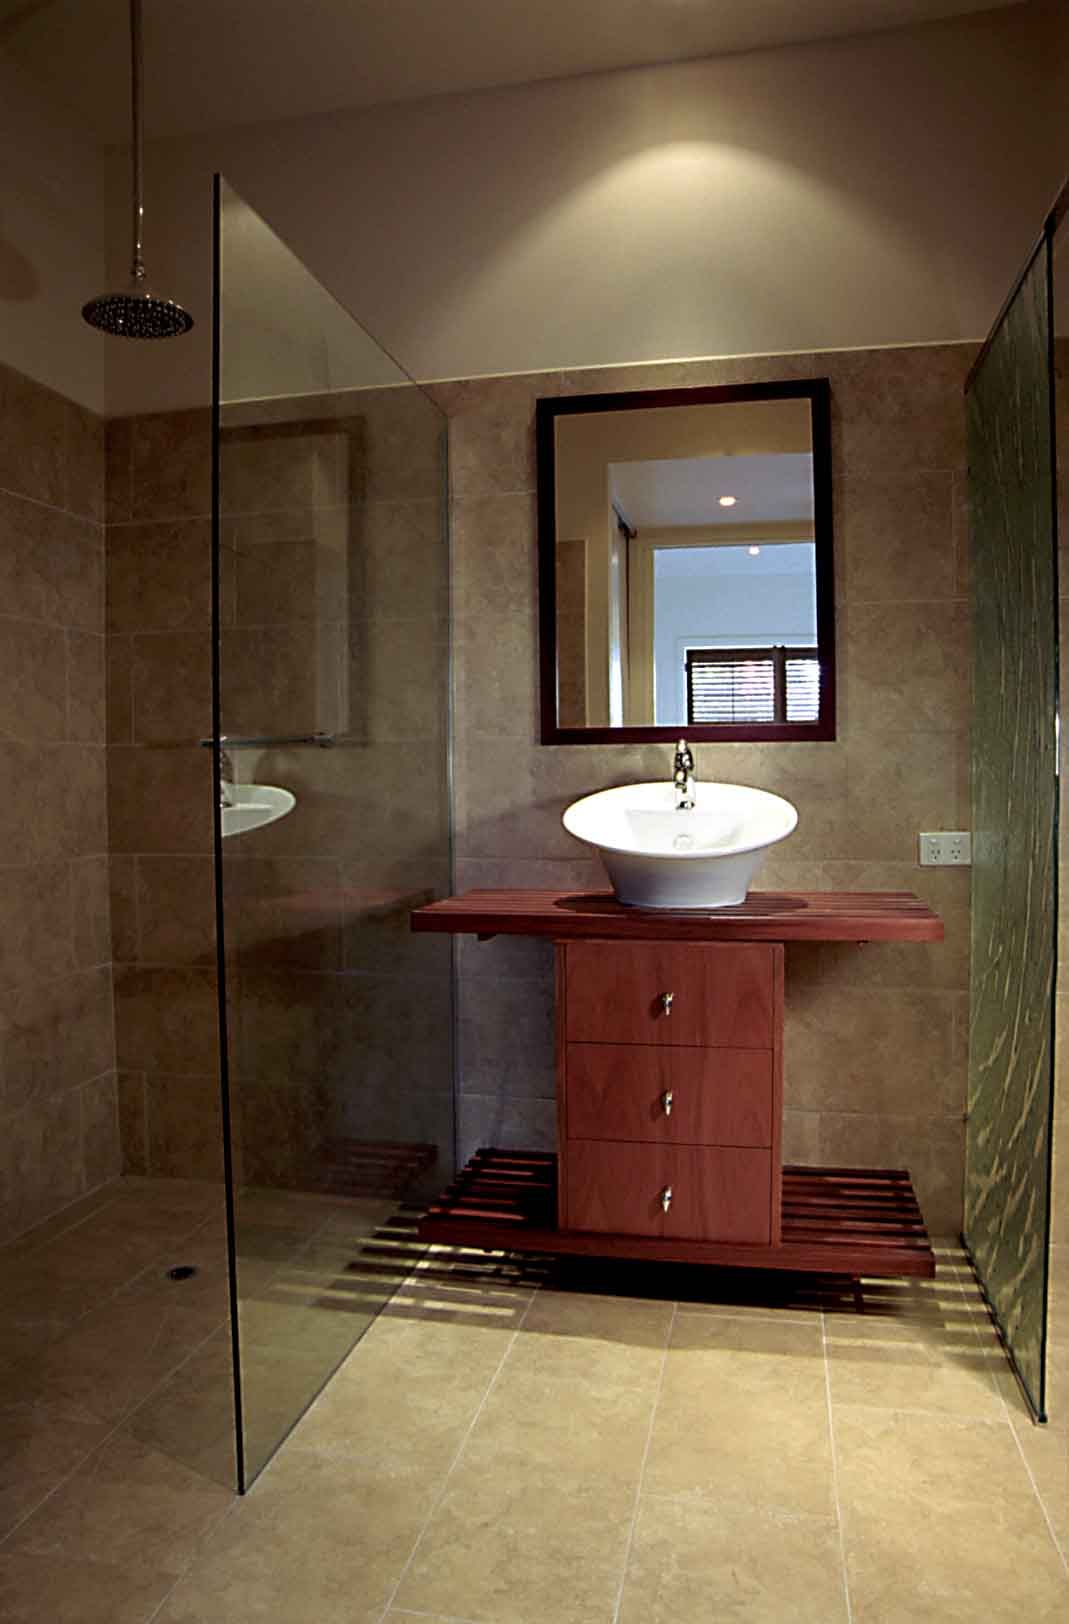 Wet room design for small bathrooms small ensuite for Small ensuite bathroom ideas